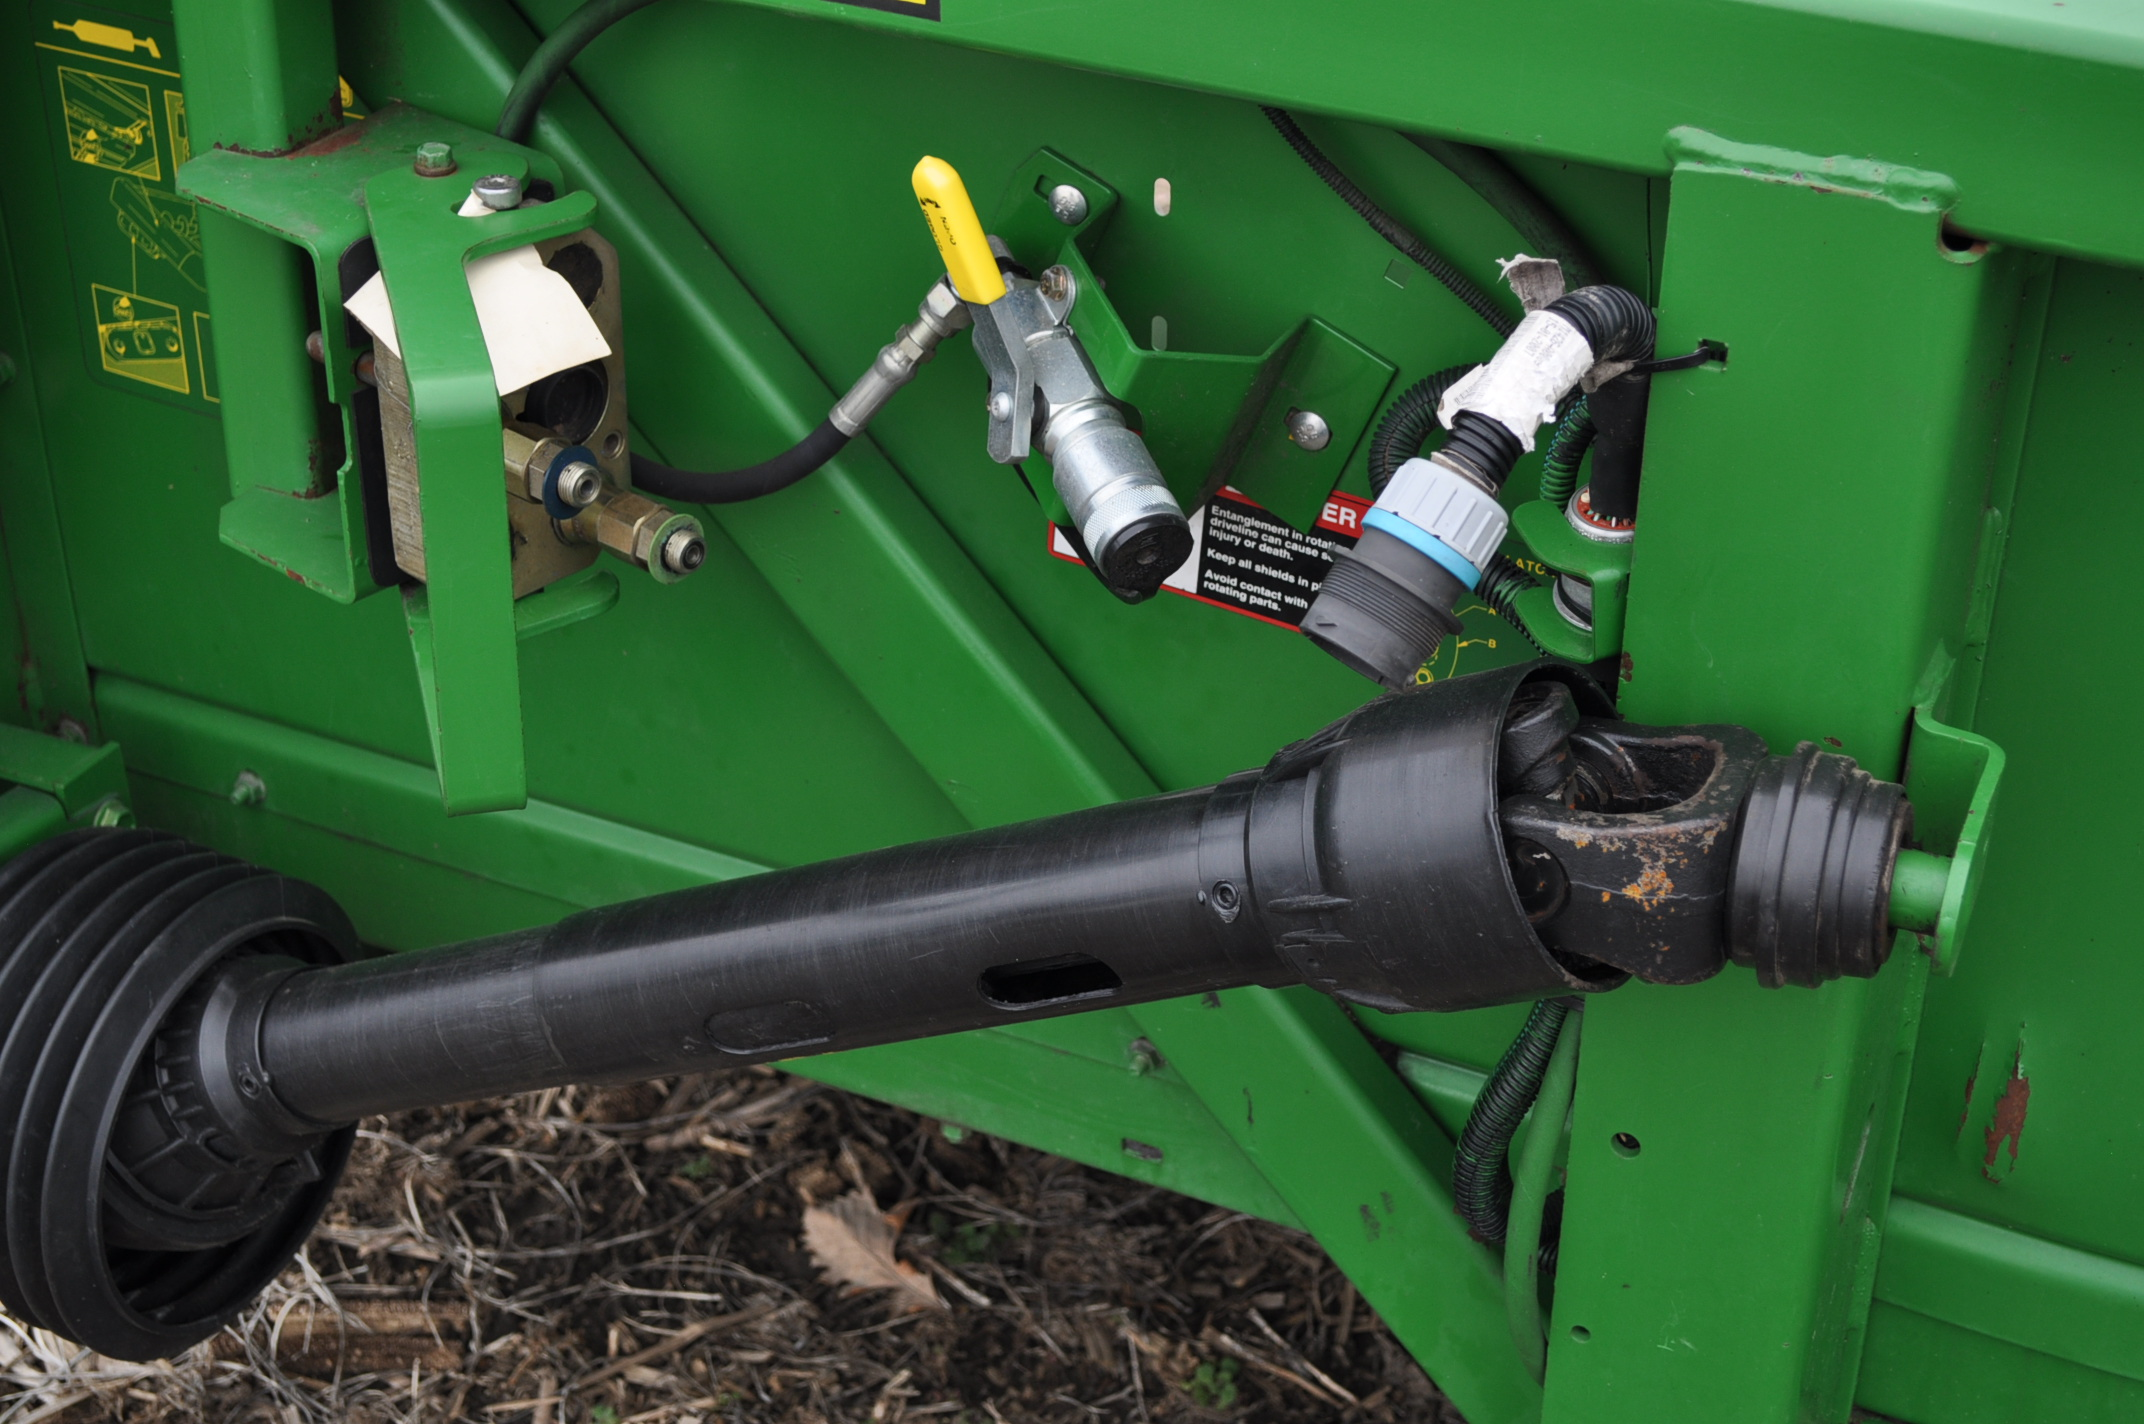 John Deere 693 corn head, poly, fluted rolls, hyd deck plates, pto shafts, SN 710815 - Image 12 of 14